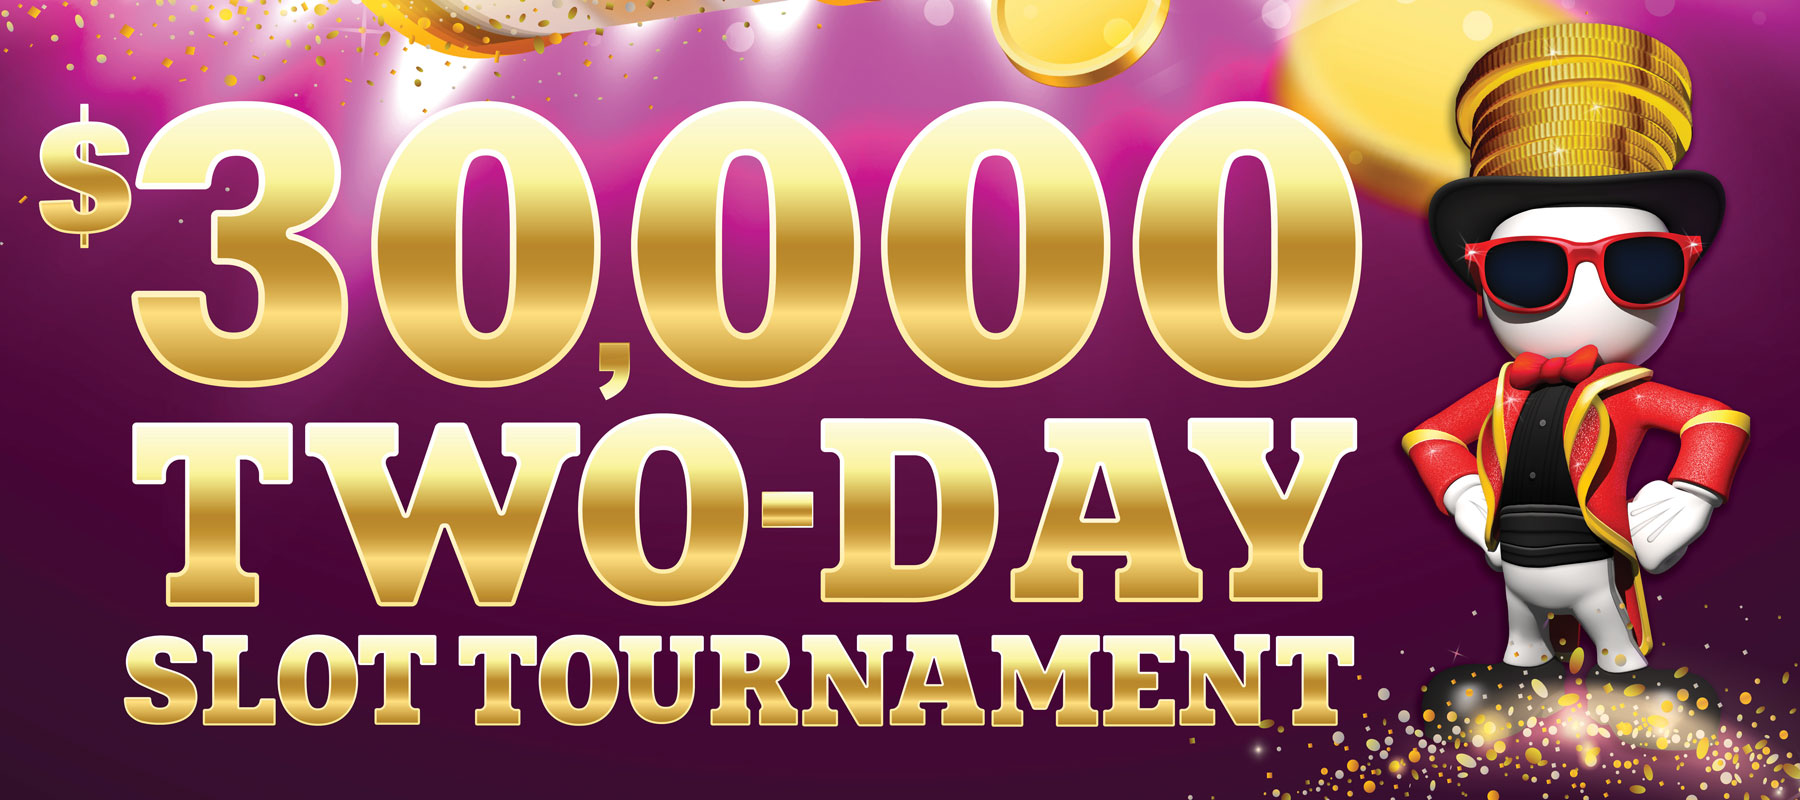 $30,000 Two-Day Slot Tournament